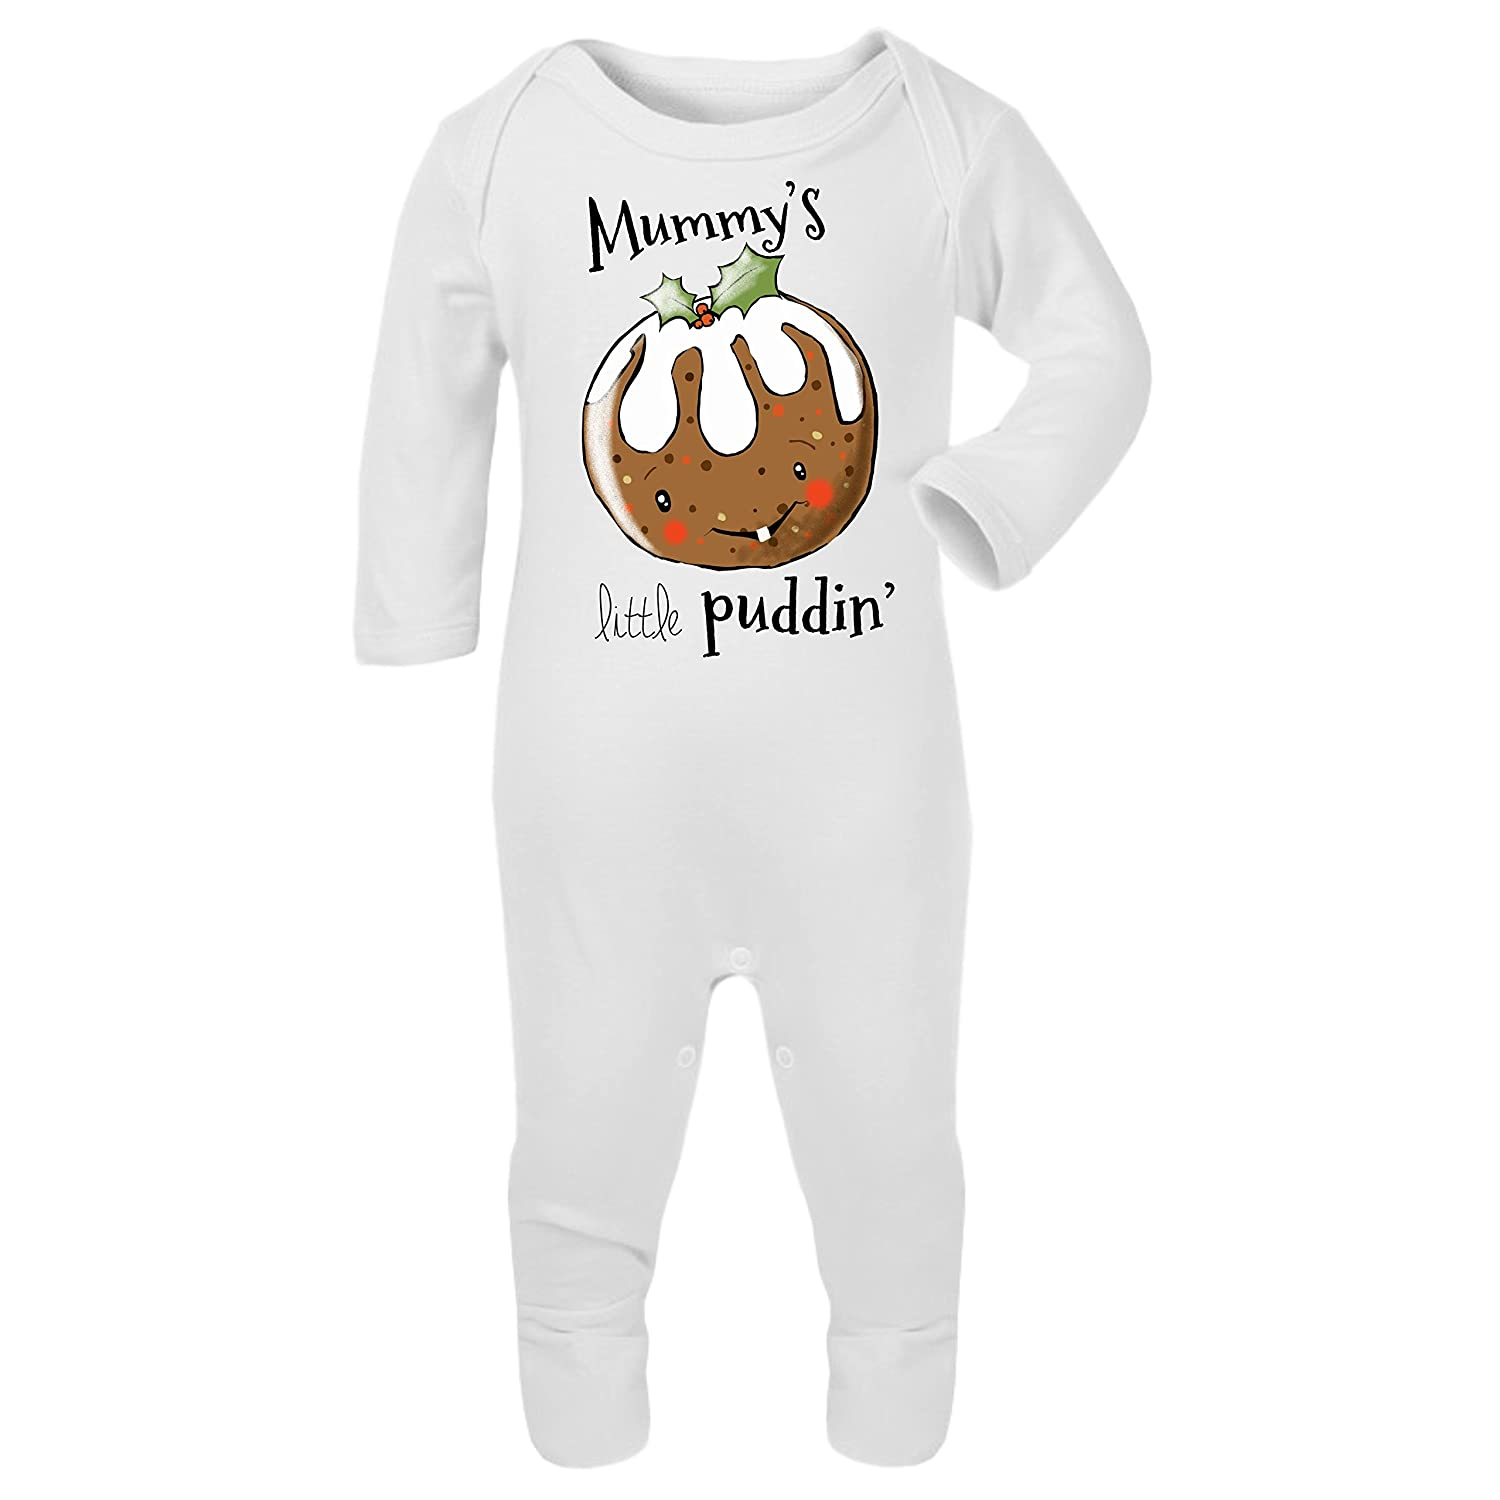 The T Bird Mummys Little Puddin Romper Suit Christmas Jumper Xmas Gift Xmas Rustic Pudding First Christmas 1st Xmas Sleep Suit